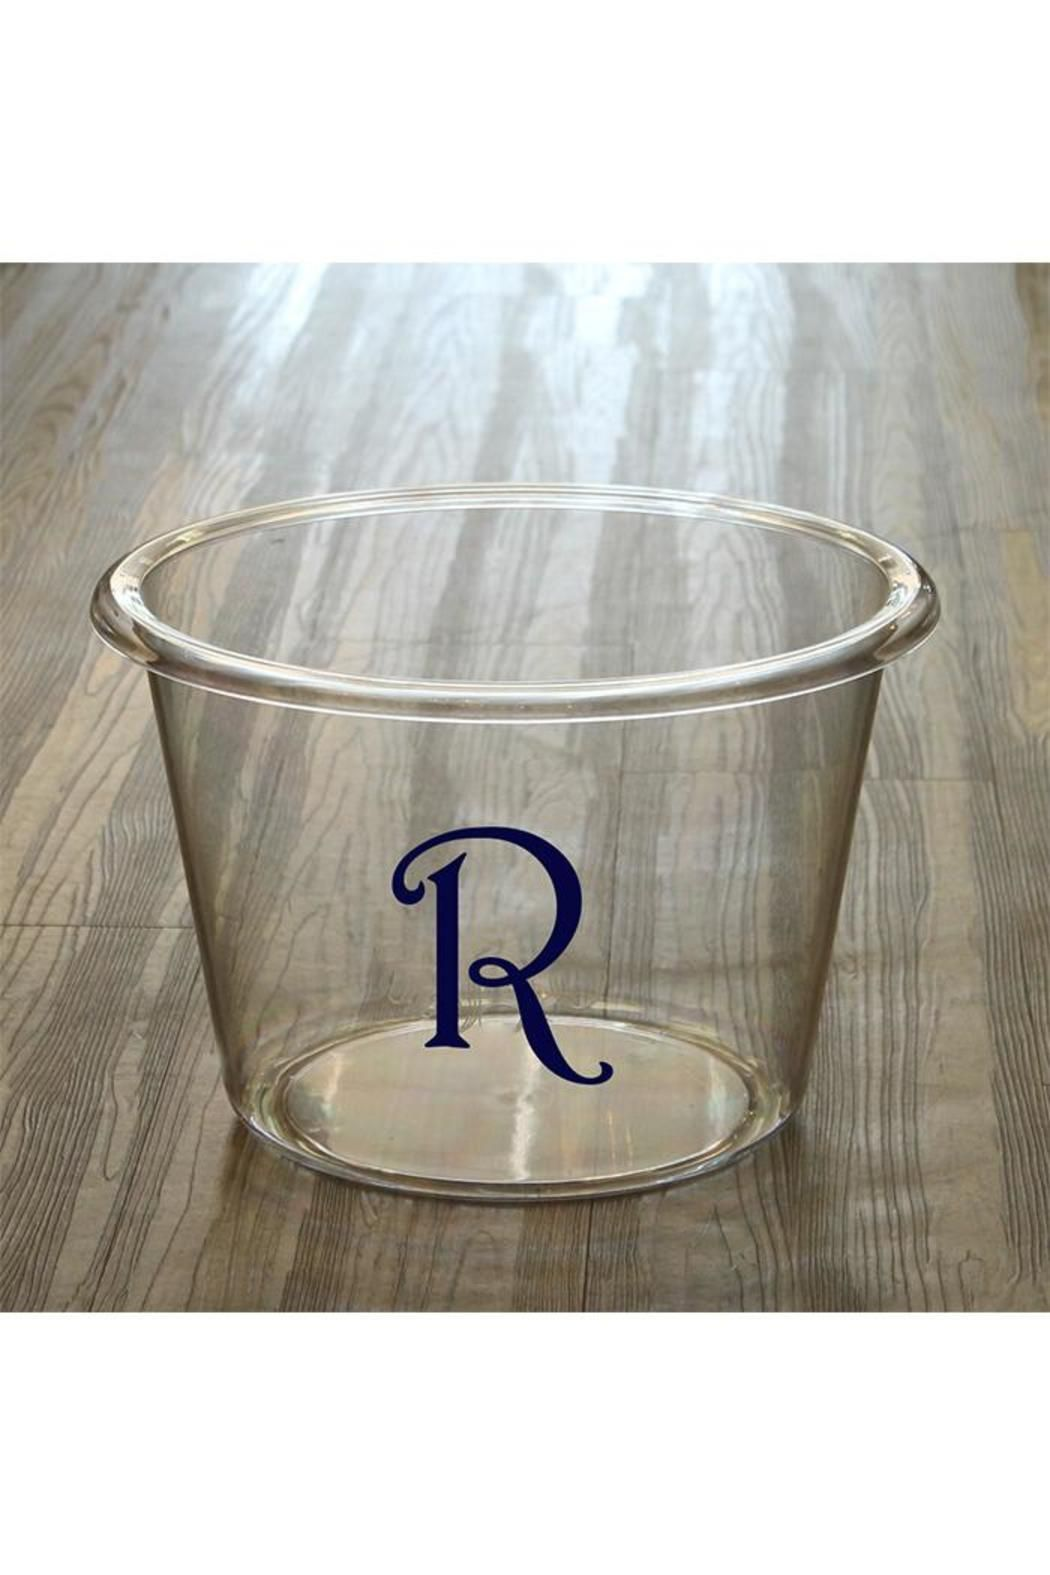 This personalized lucite beverage bucket is made from 100% BPA-free, high grade